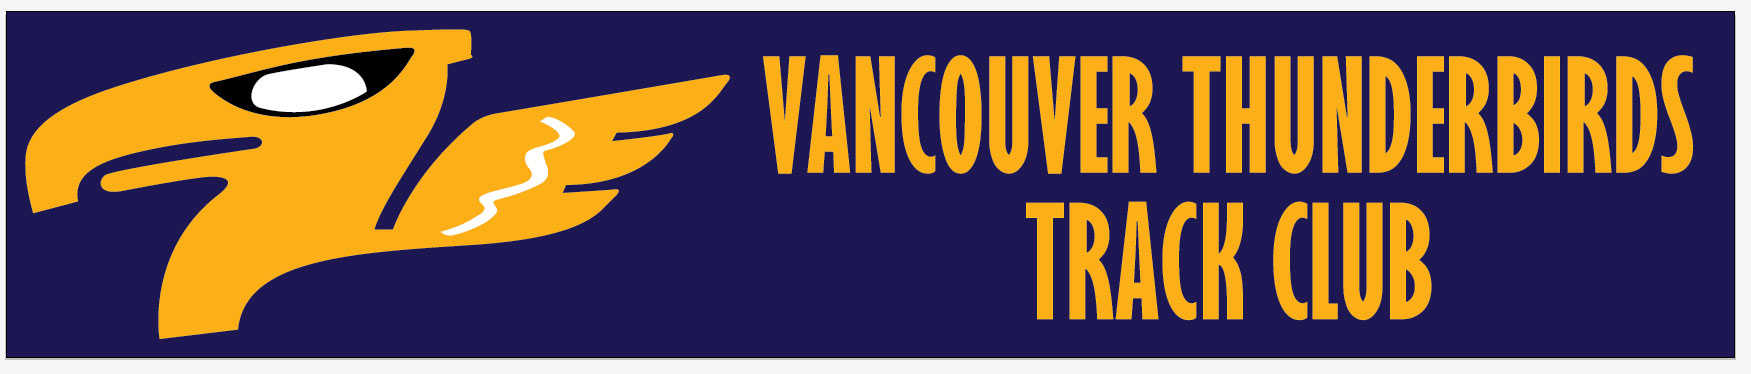 Image result for vancouver thunderbirds track